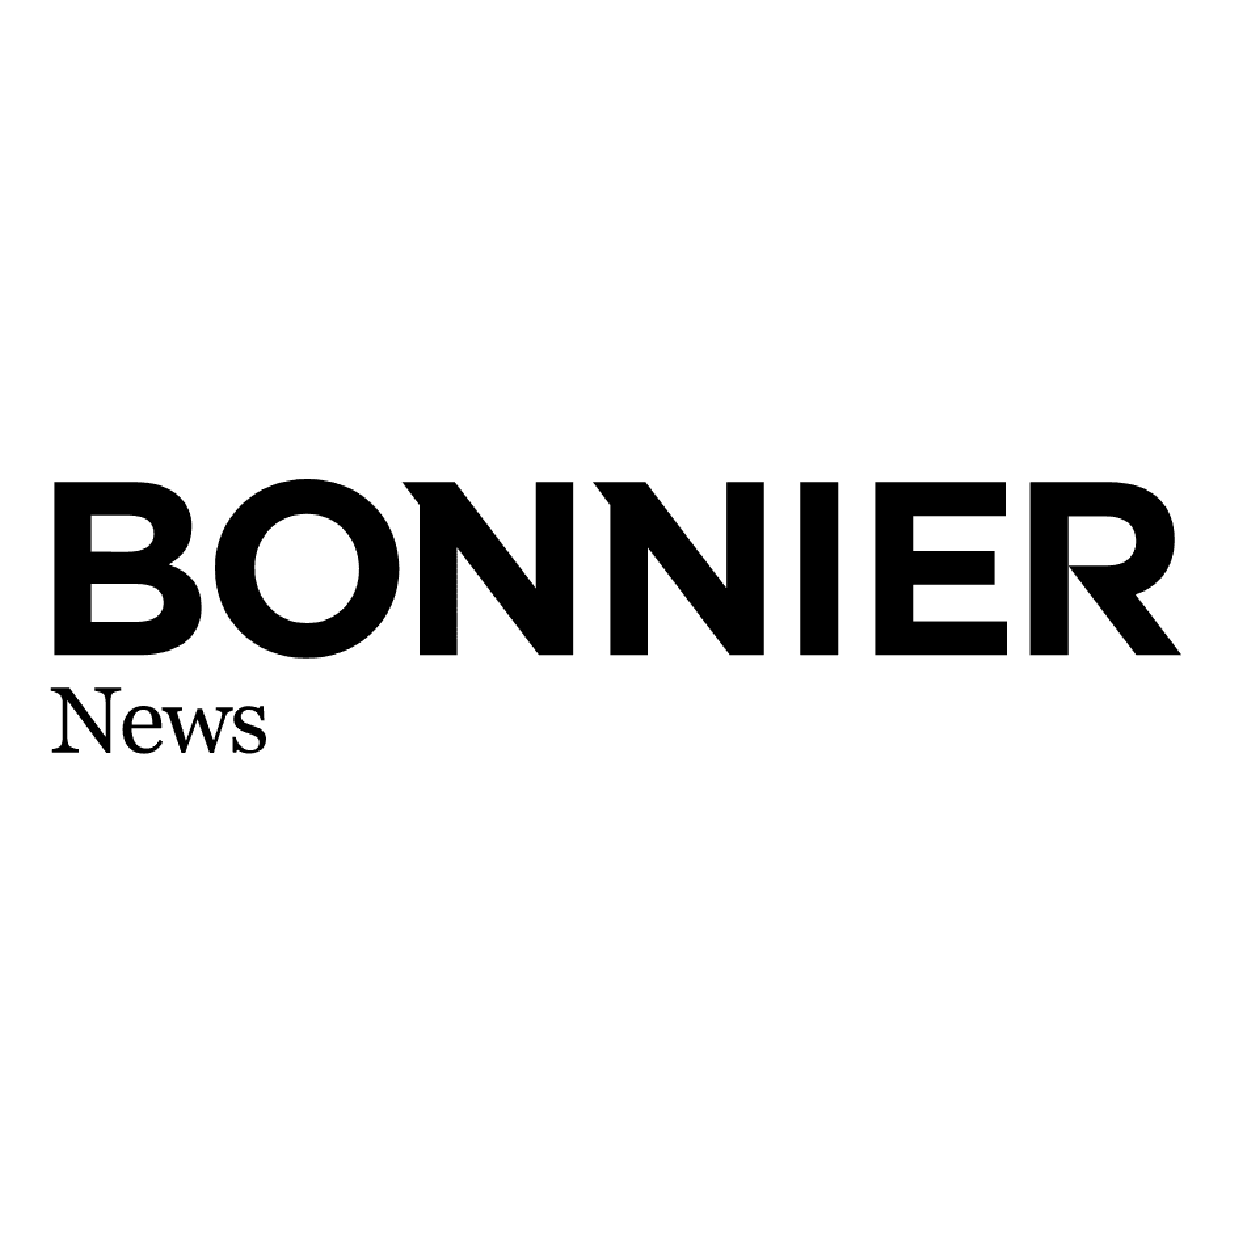 Bonnier News bostad by Upbeater